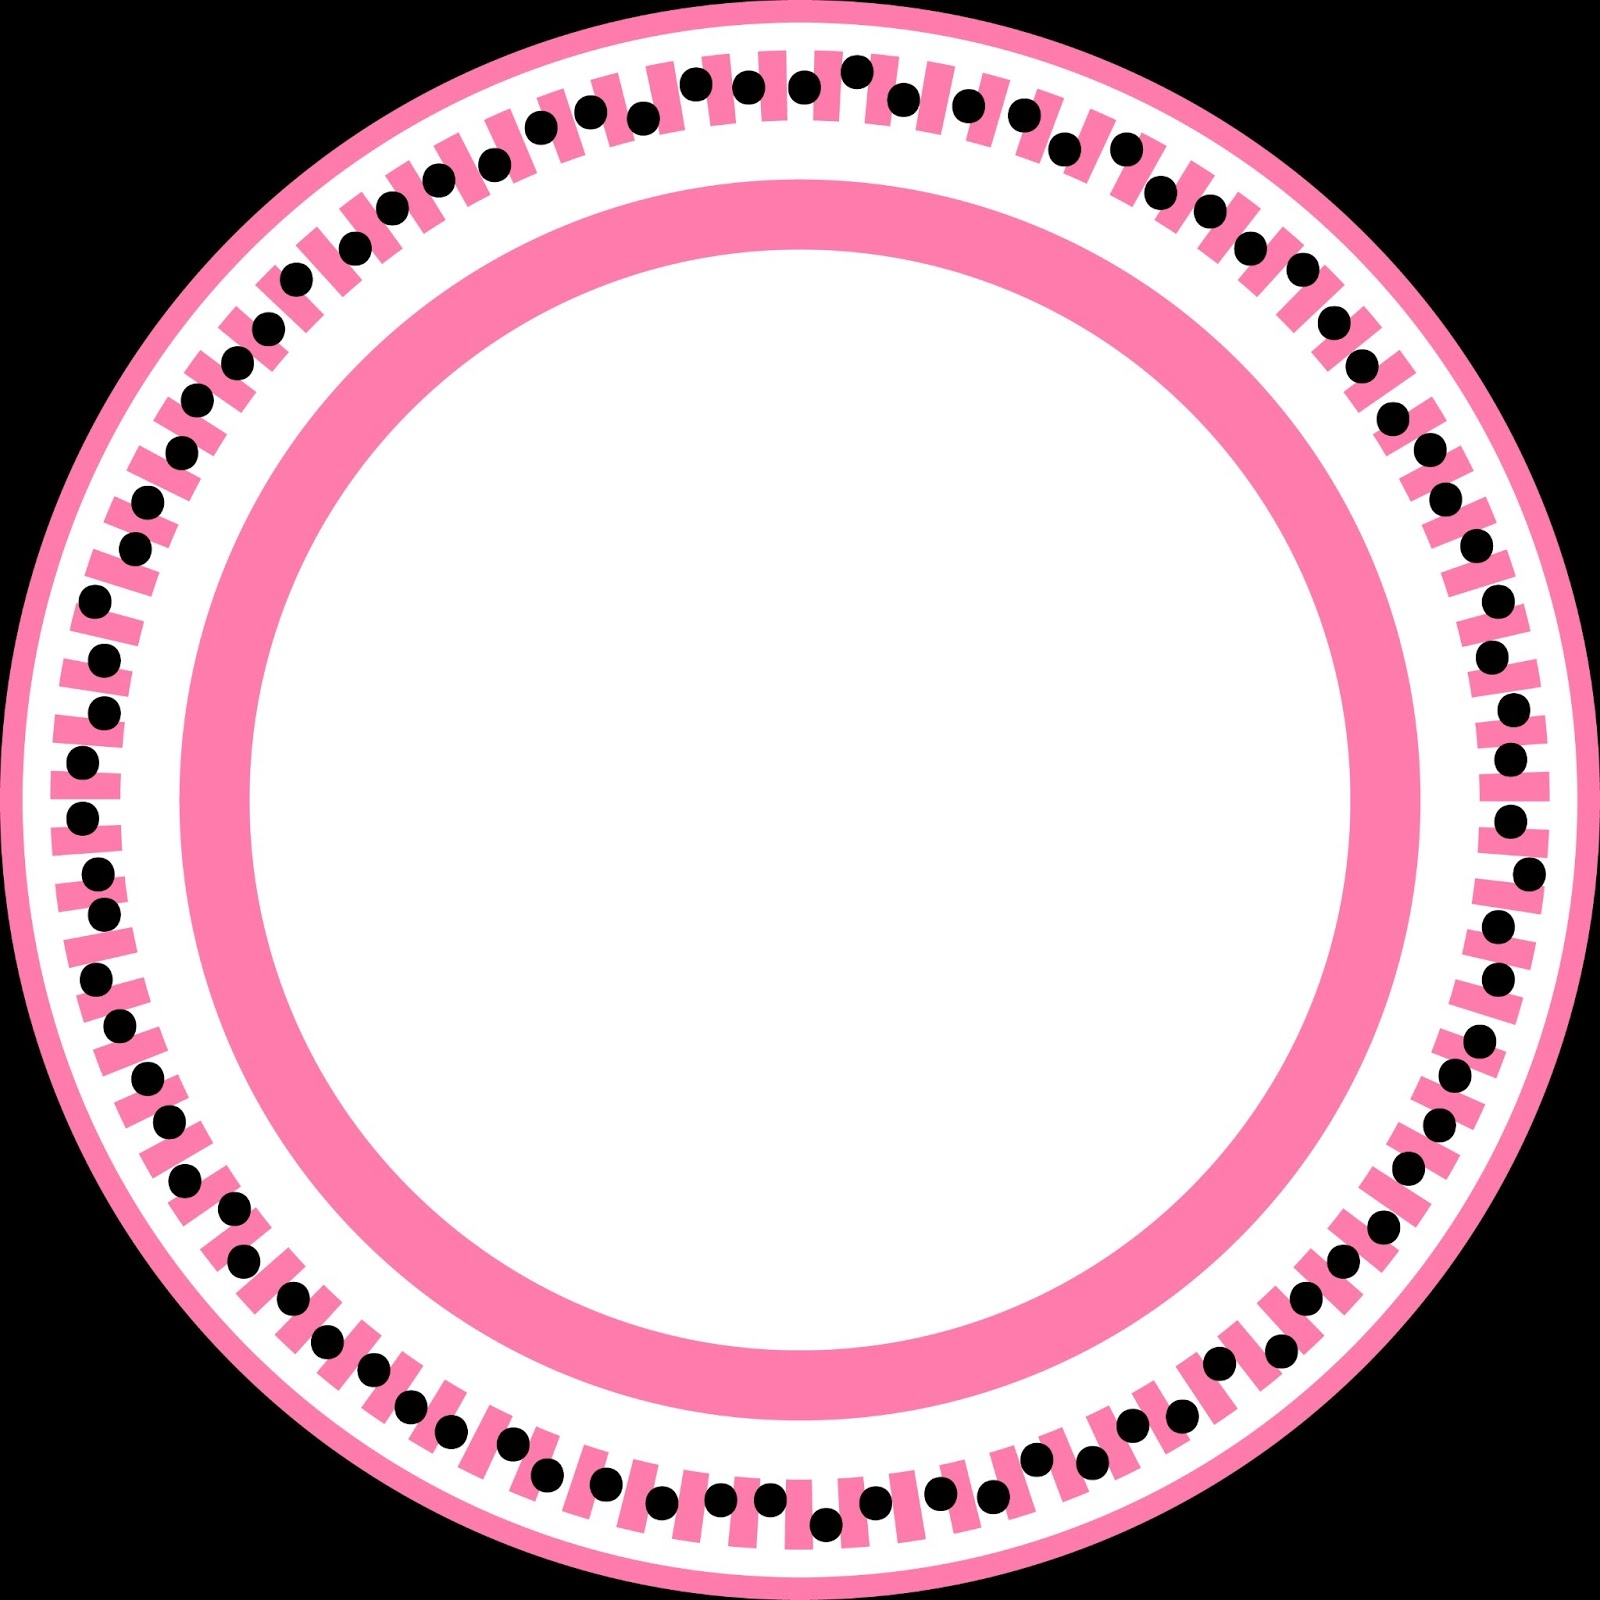 Circle Object Clipart.